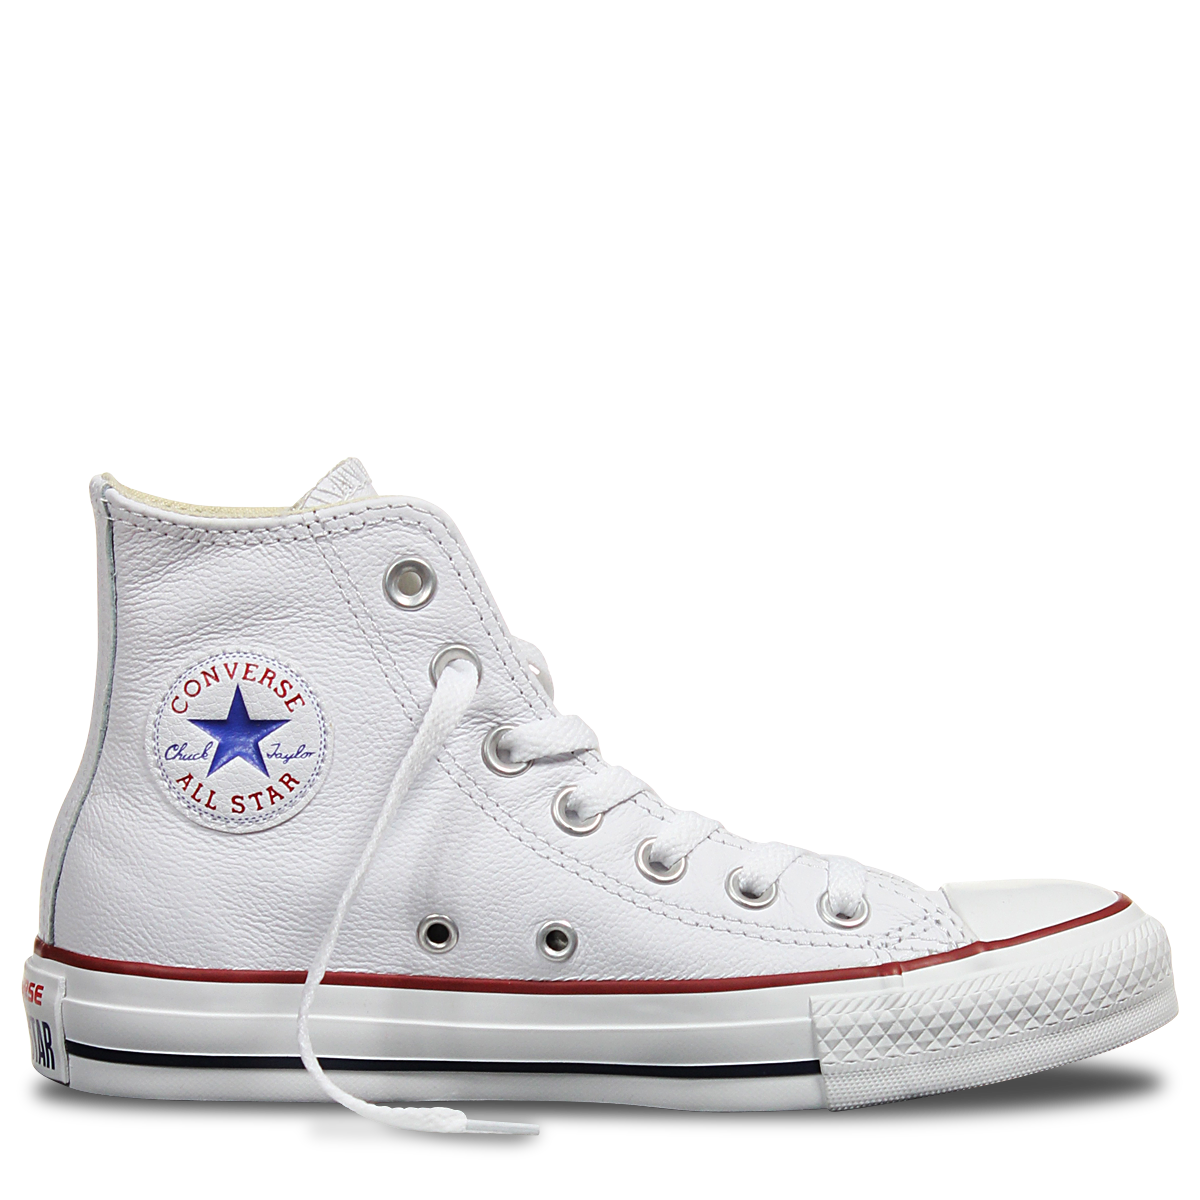 Chuck Taylor All Star Fancy Leather white Converse | How to